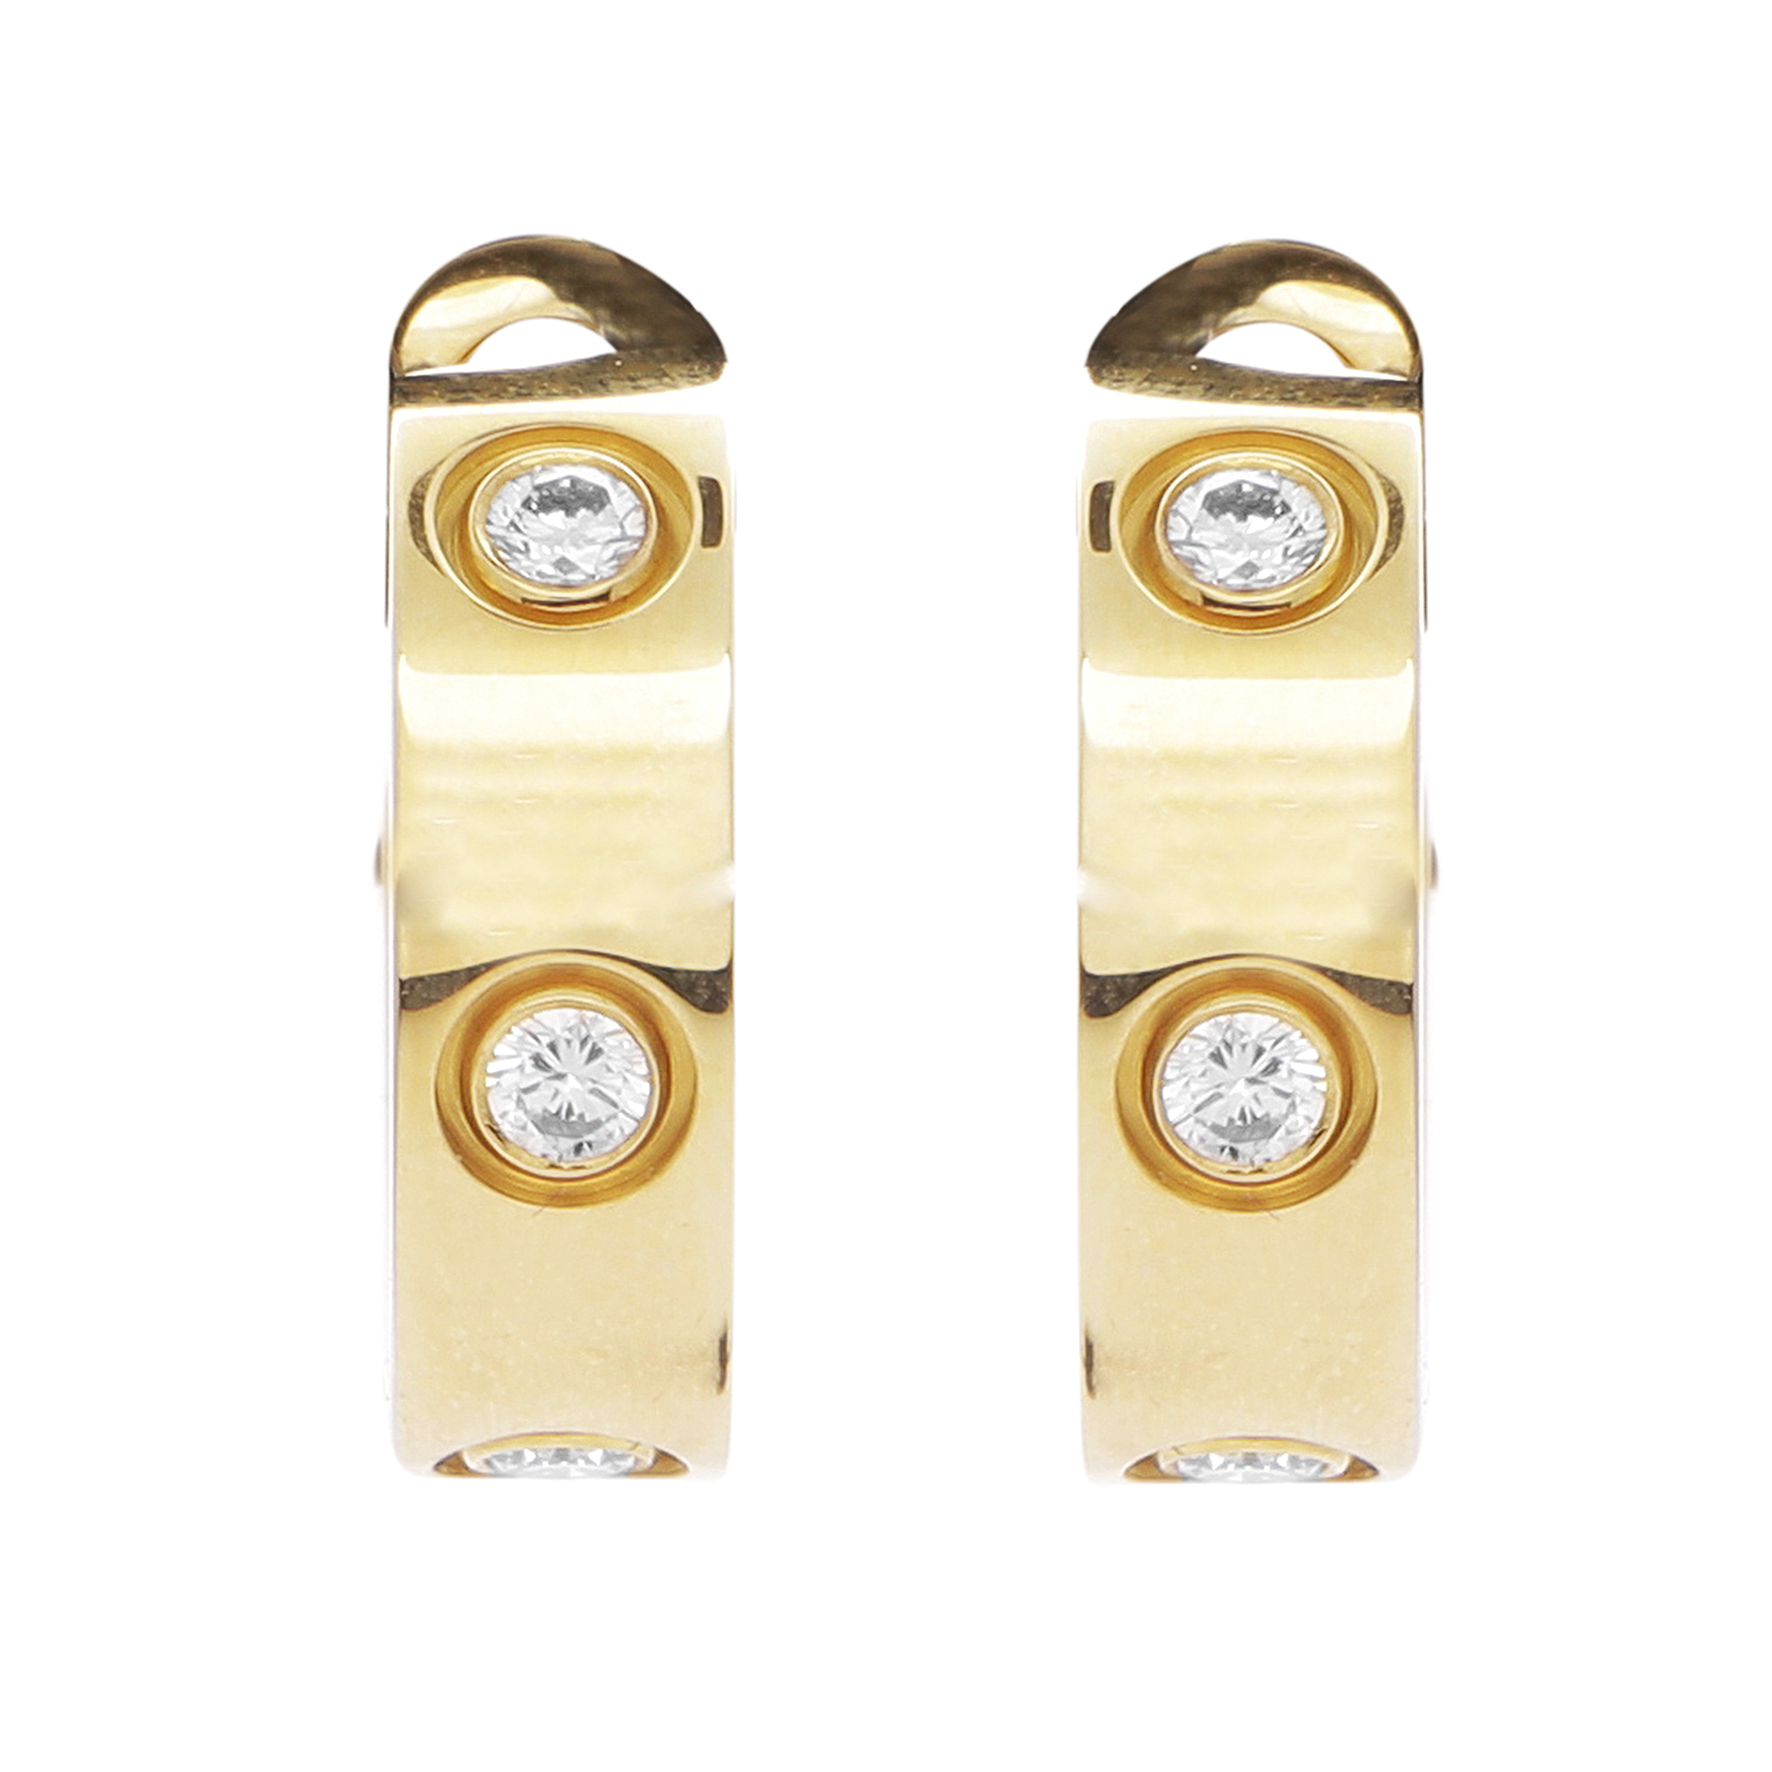 Los 50 - A PAIR DIAMOND LOVE EARRINGS, CARTIER in 18ct gold each jewelled with three round cut diamond, box